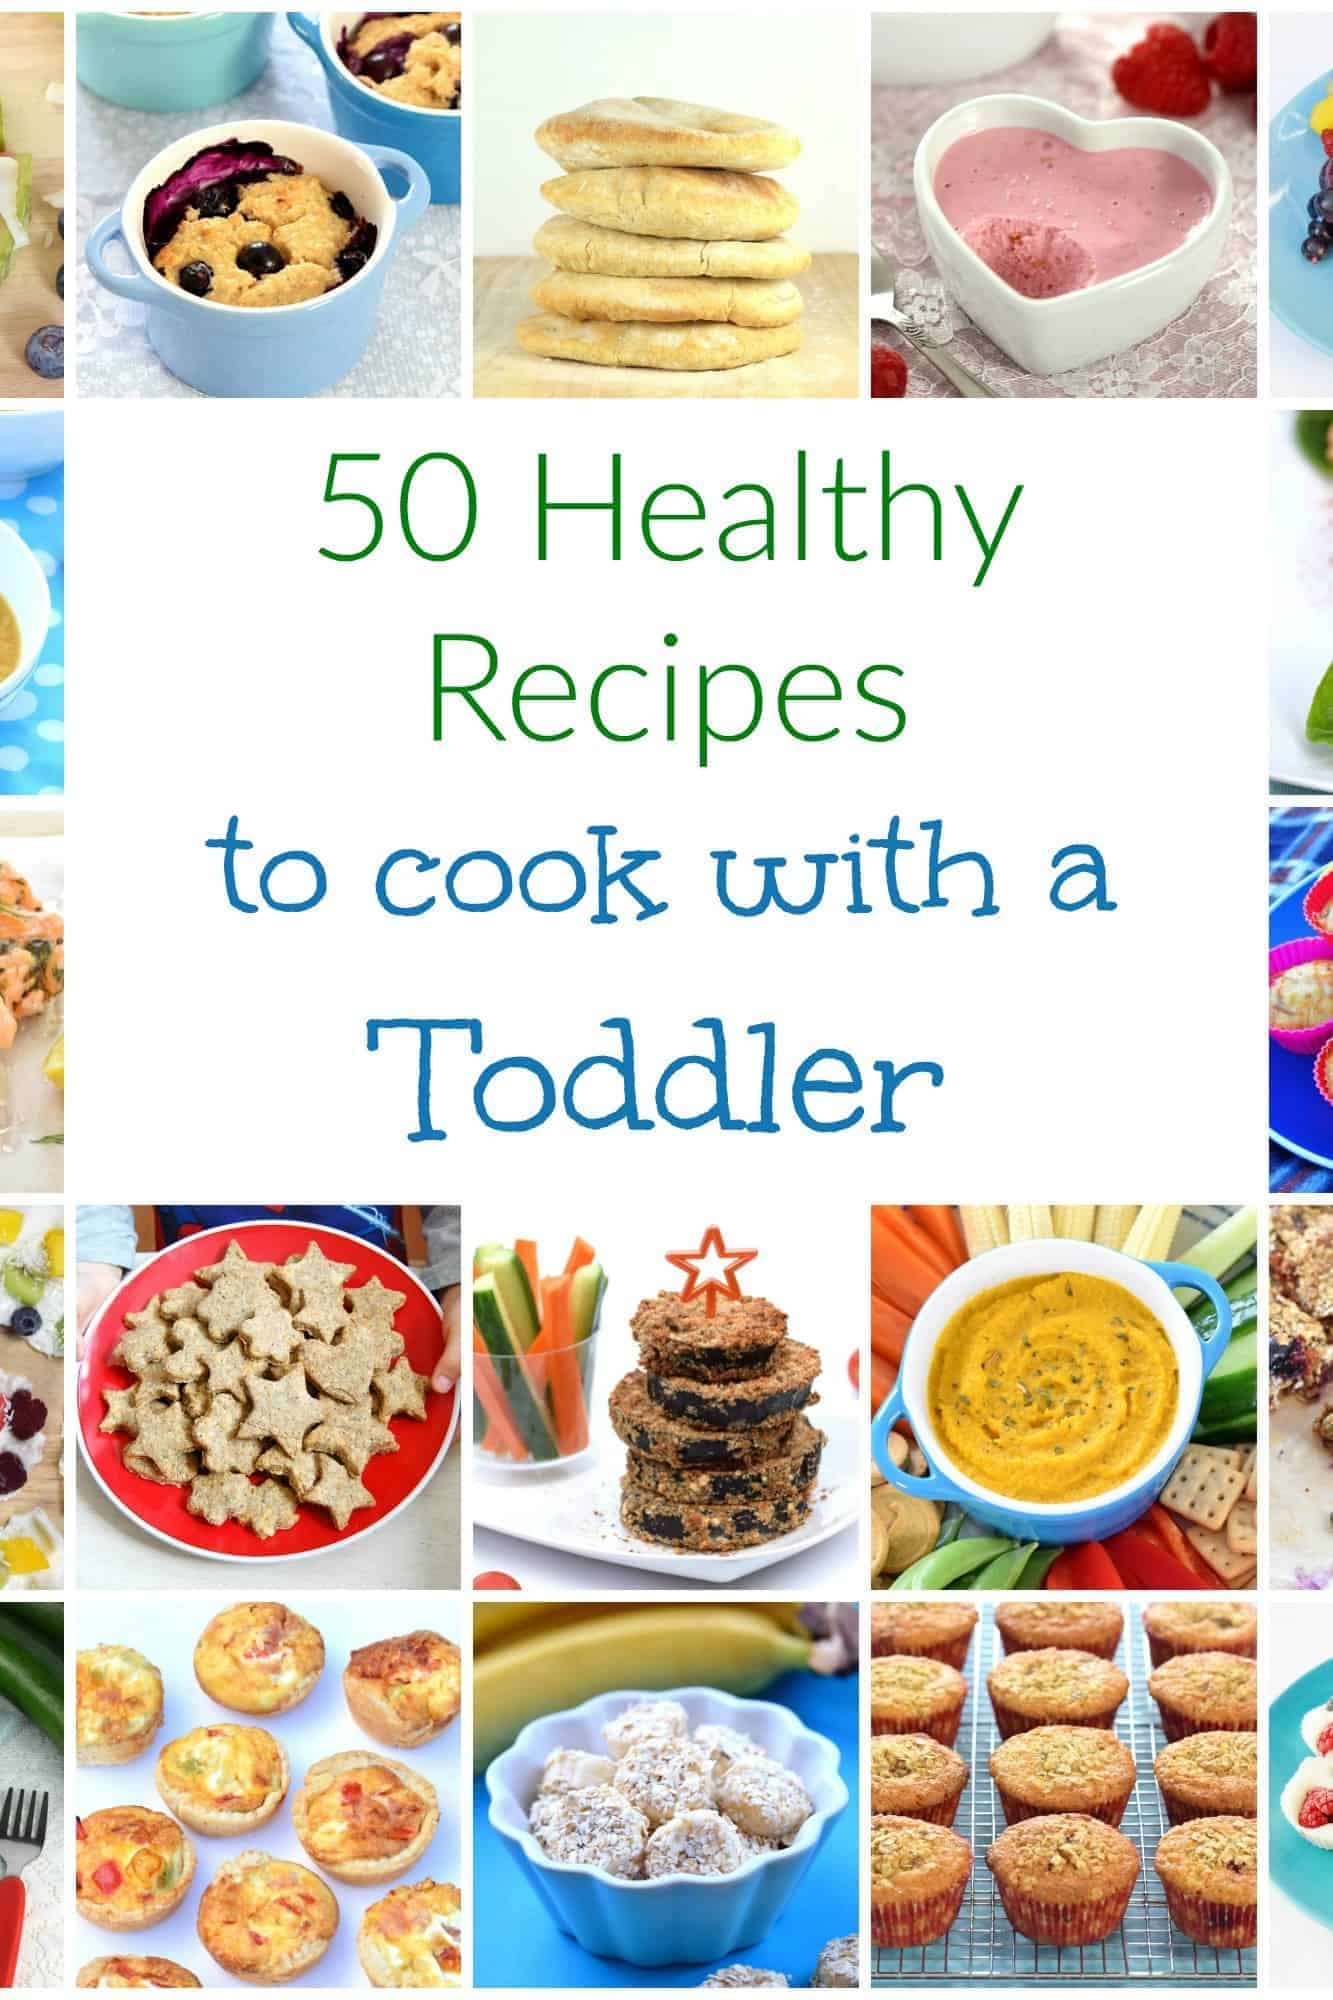 50 easy healthy recipes to cook with young kids and top tips for how to cook with toddlers #cookingwithkids #toddlerfood #kidsfood #kidsinthekitchen #easyrecipes #familyfood #healthykids #healthyrecipes #healthyfood #toddler